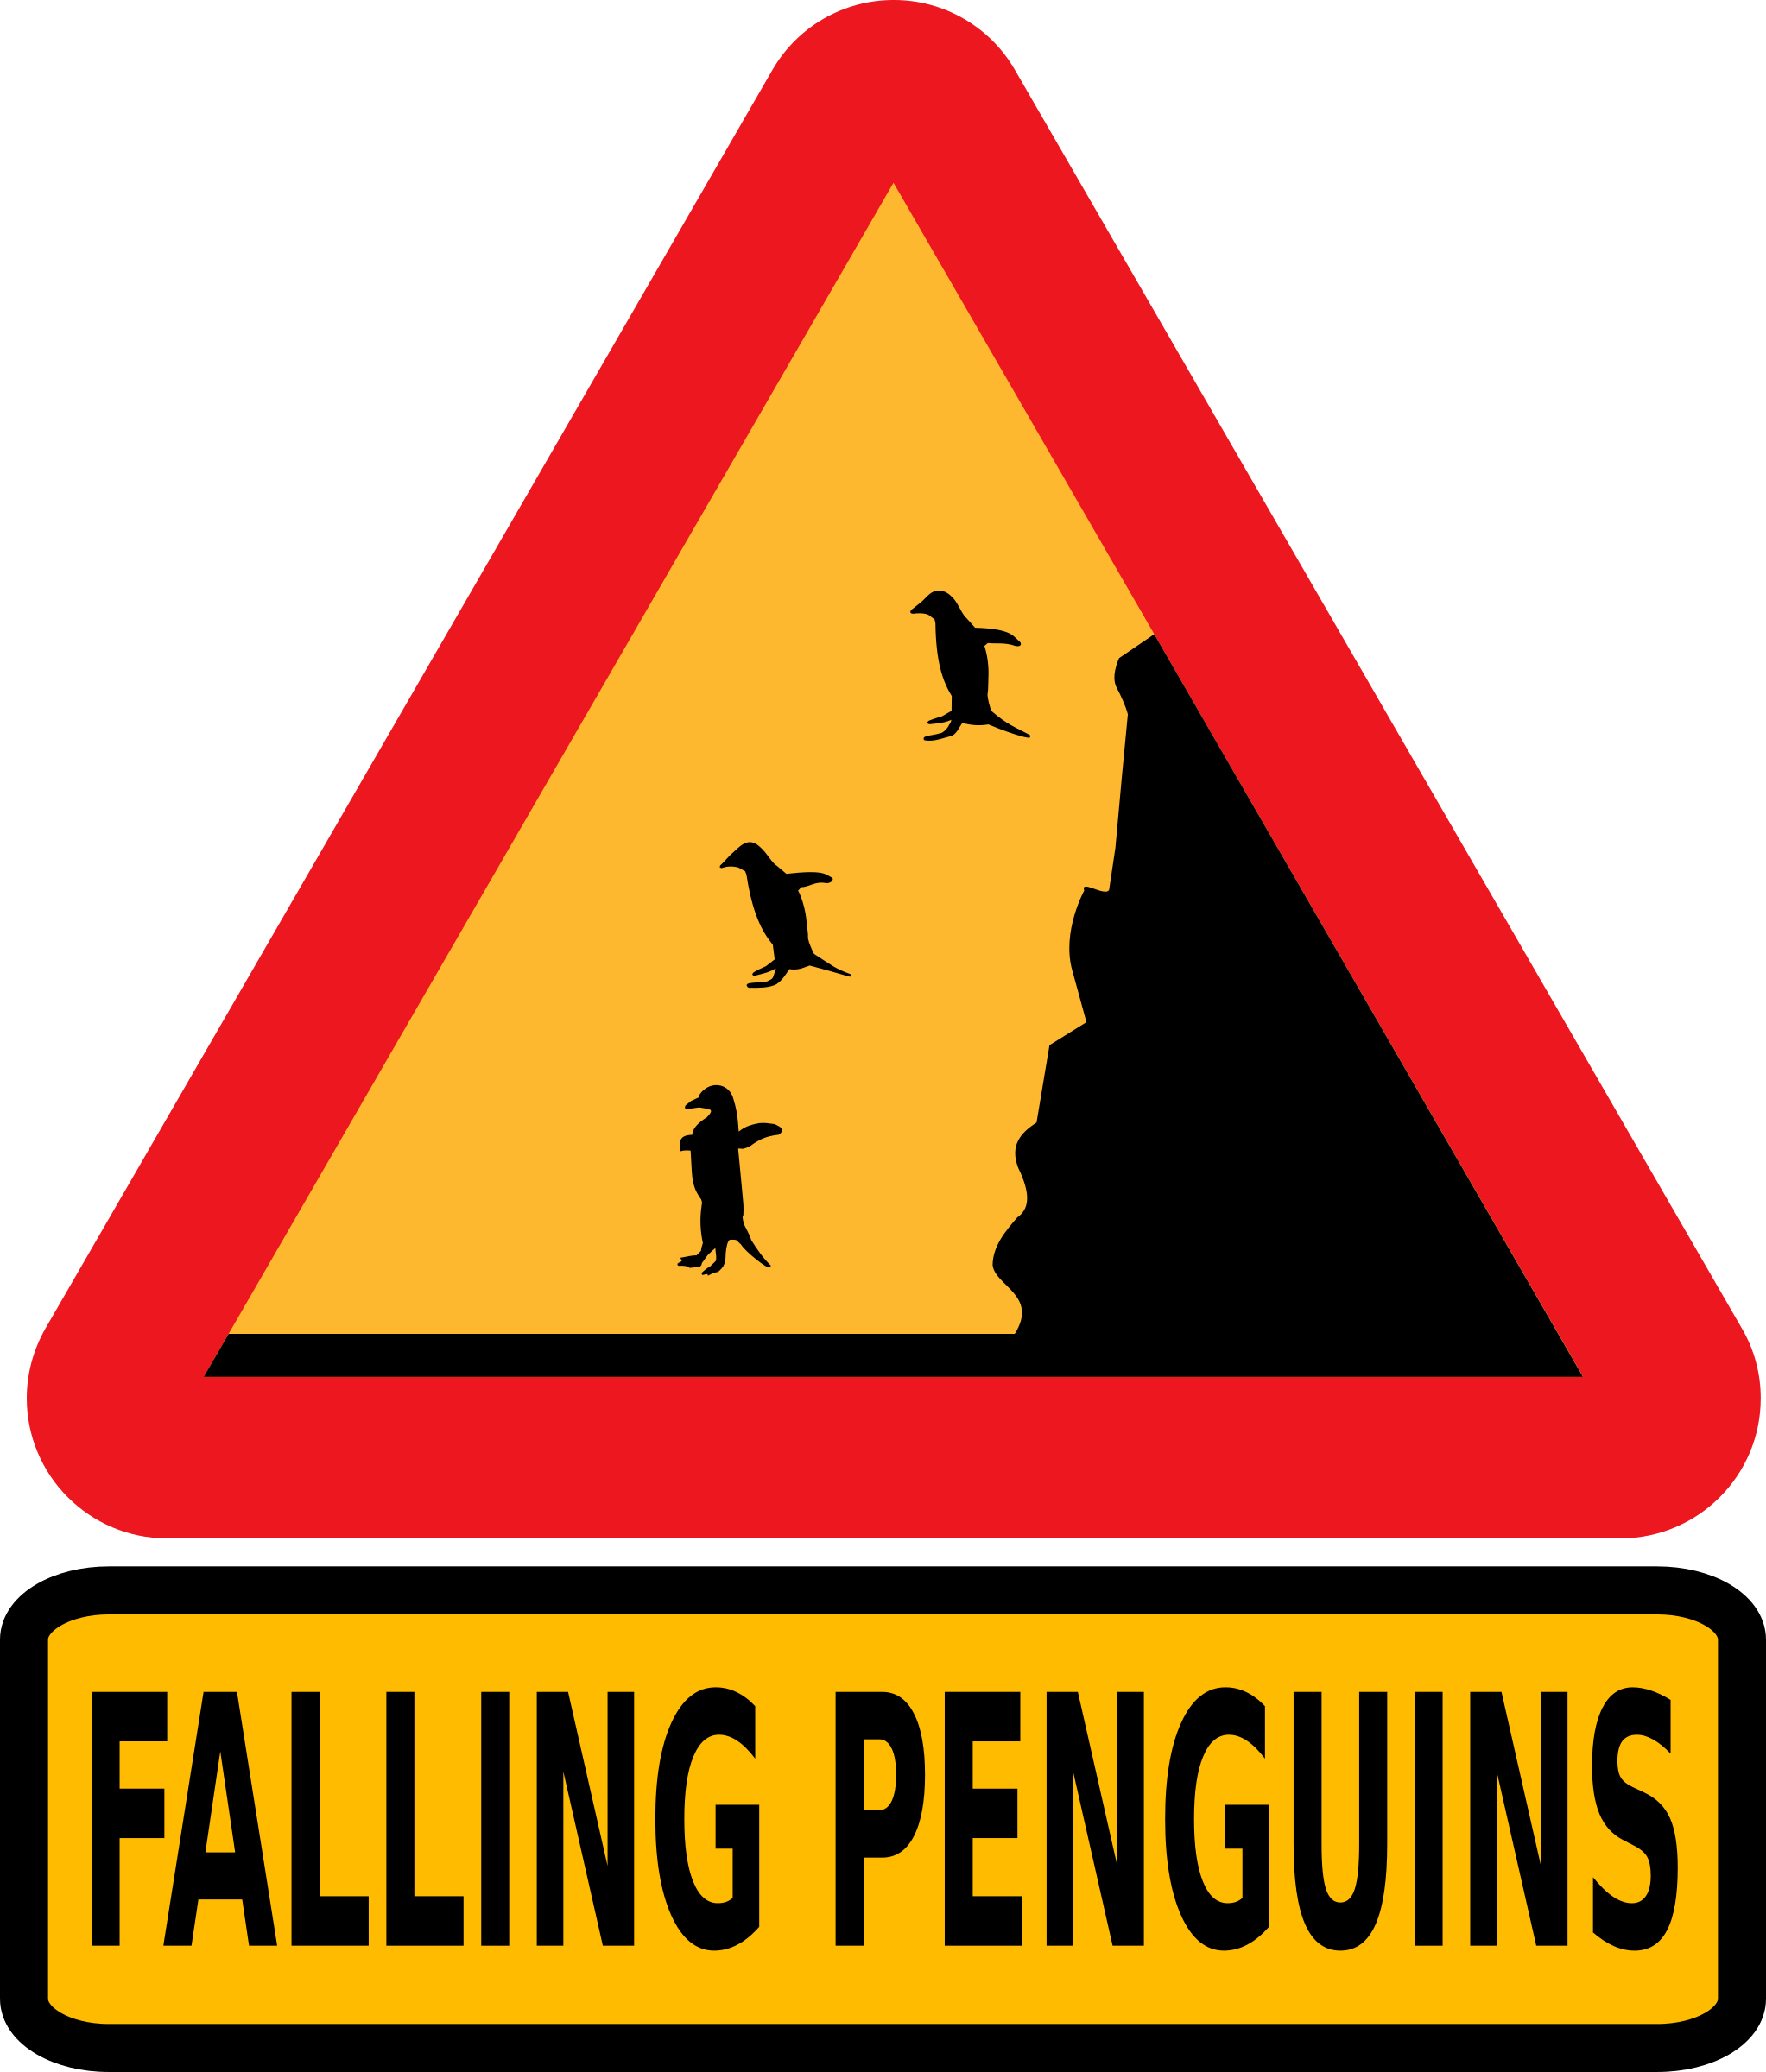 Warning falling penguins by dominiquechappard